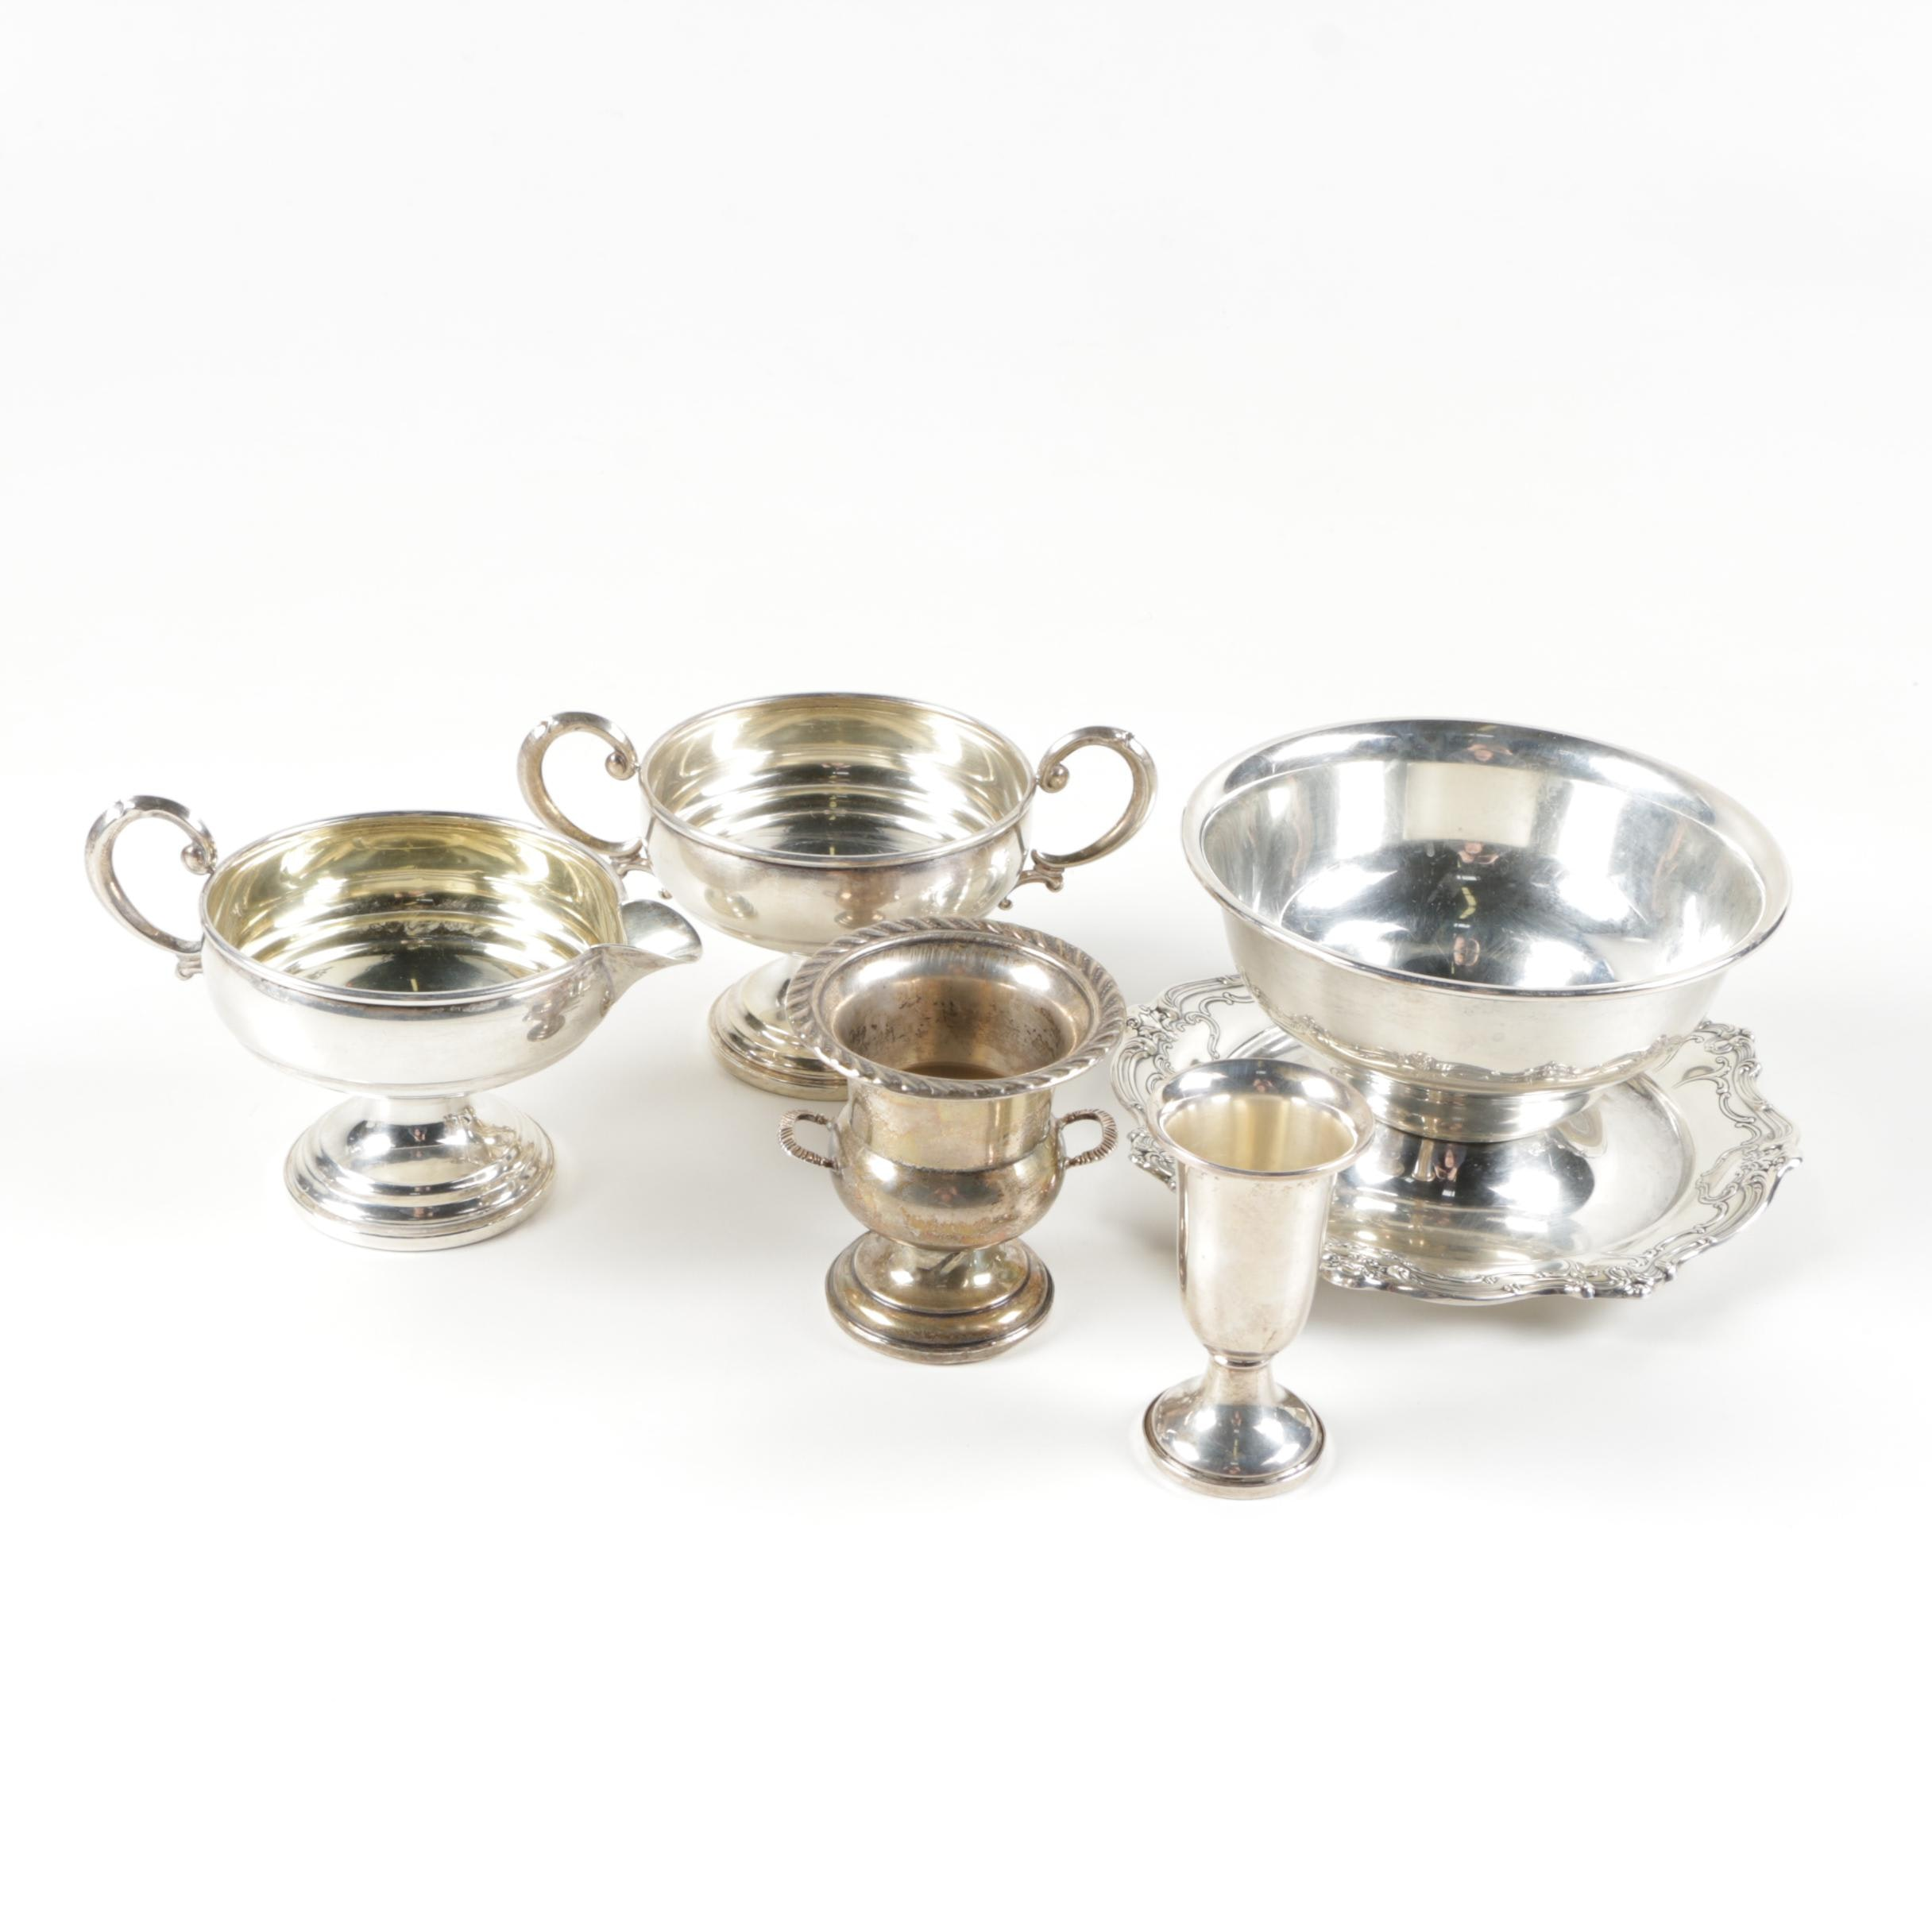 Assorted Sterling and Weighted Sterling Servingware Featuring Gorham